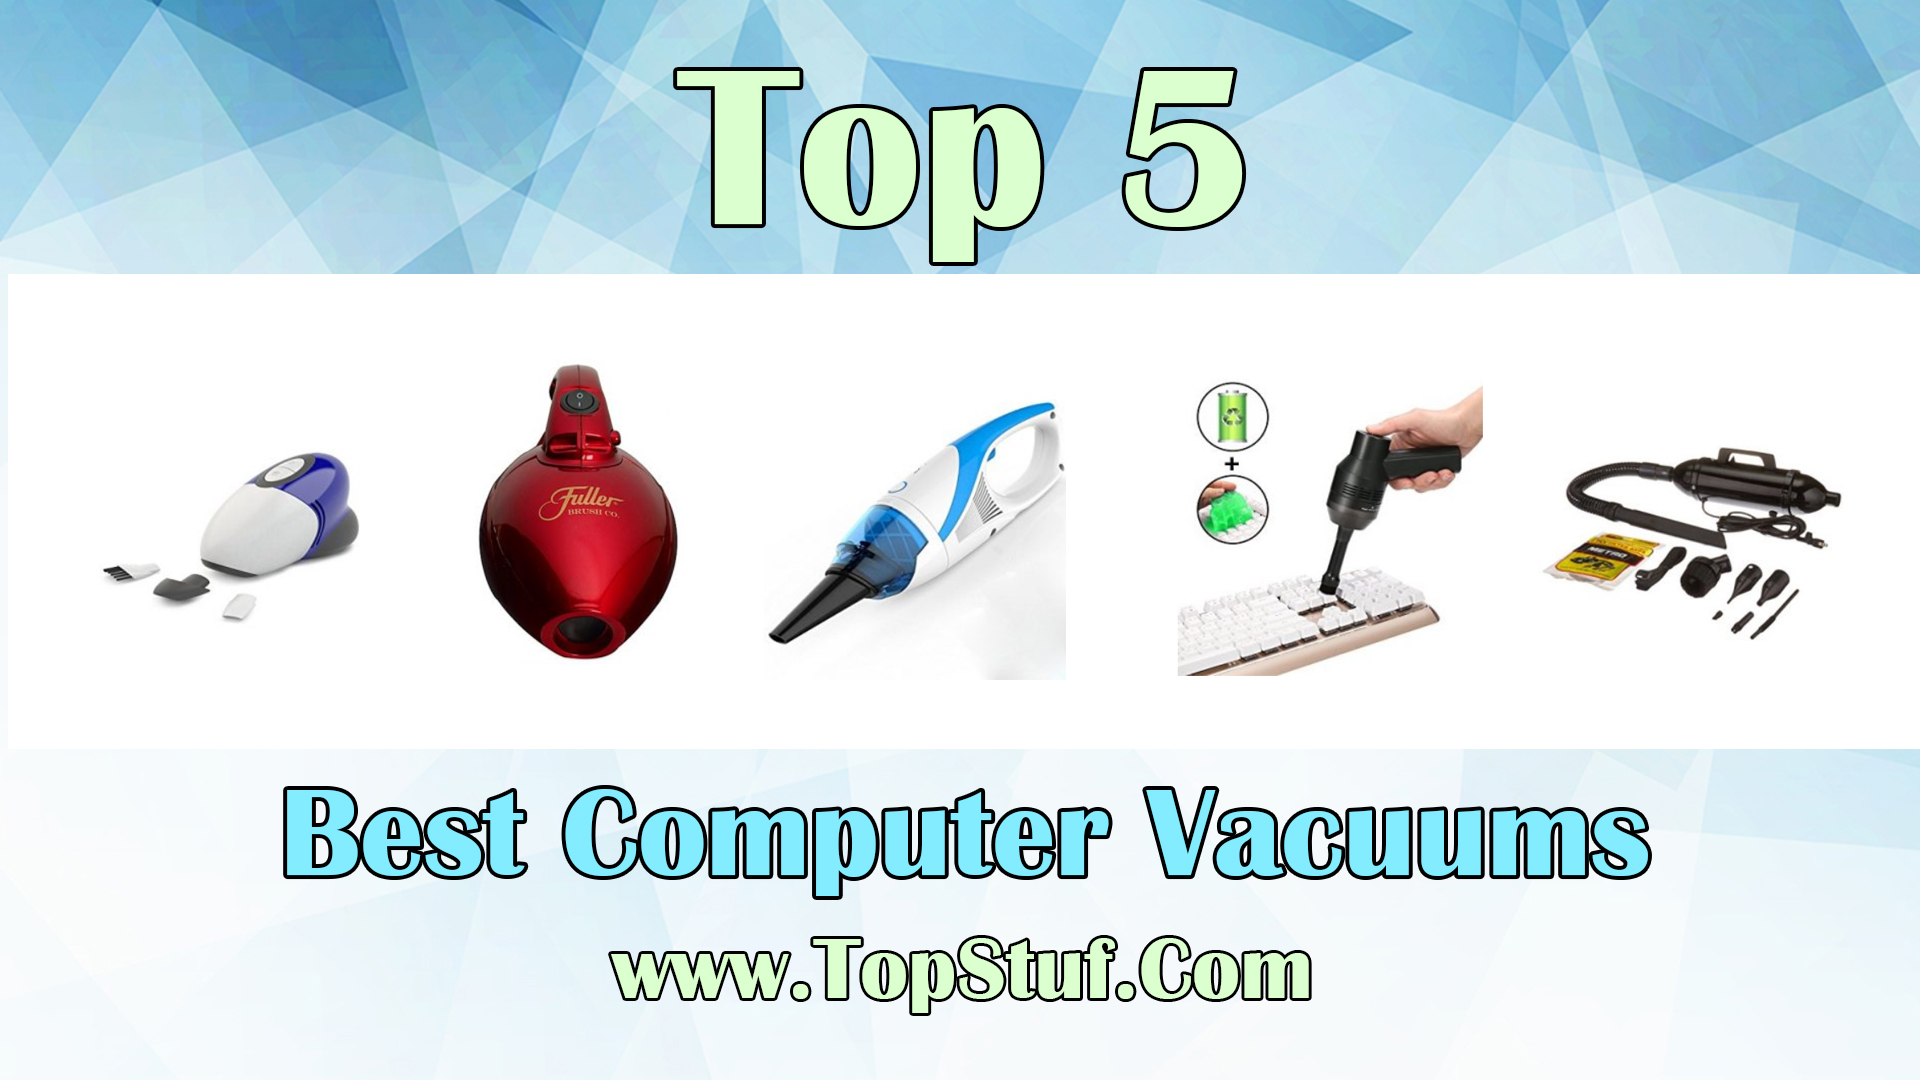 Best Computer Vacuums